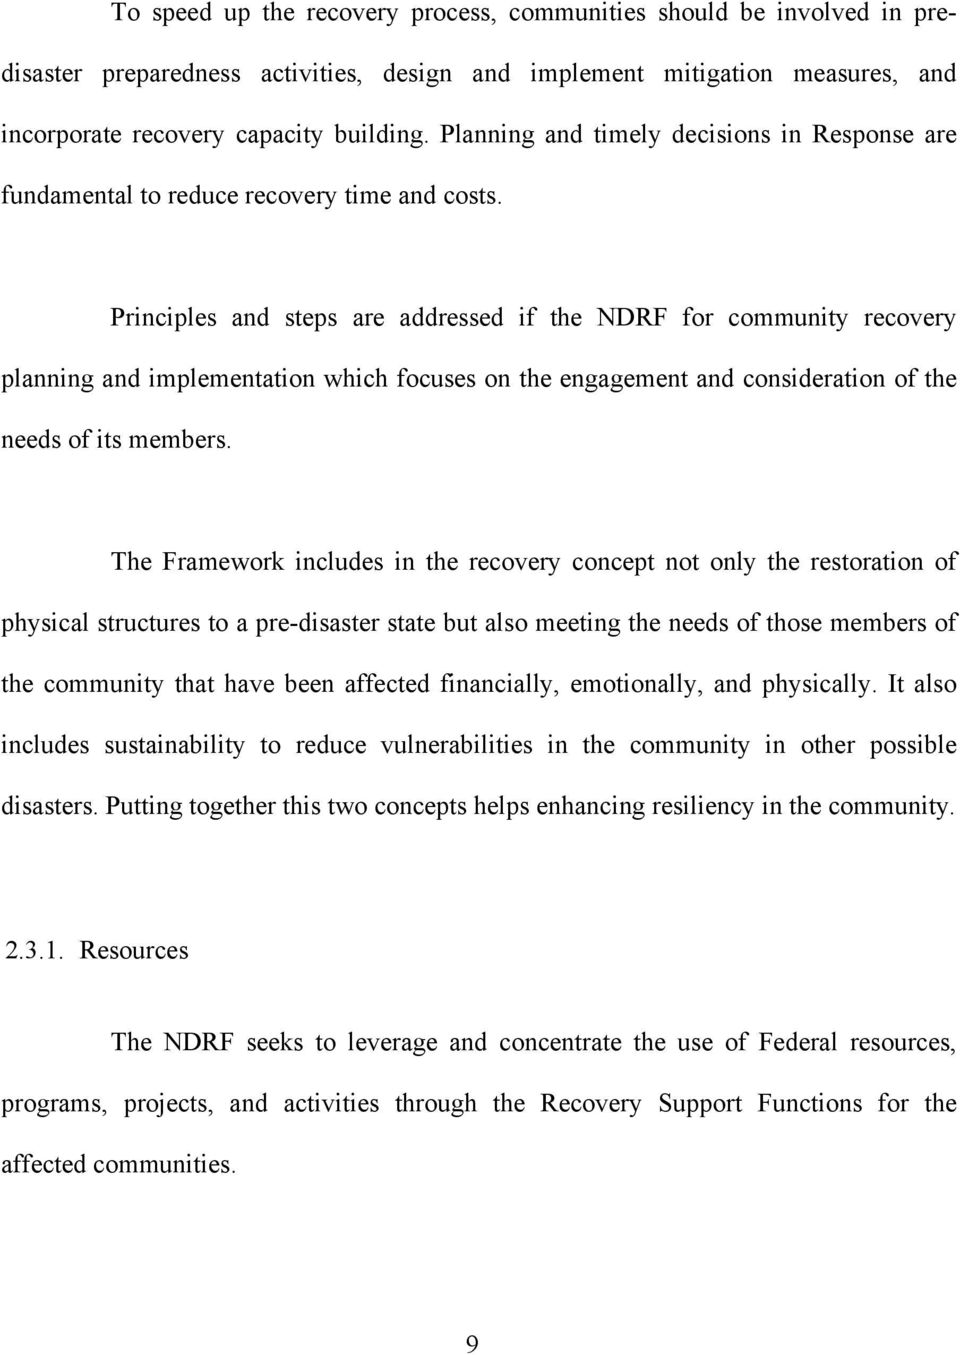 Principles and steps are addressed if the NDRF for community recovery planning and implementation which focuses on the engagement and consideration of the needs of its members.